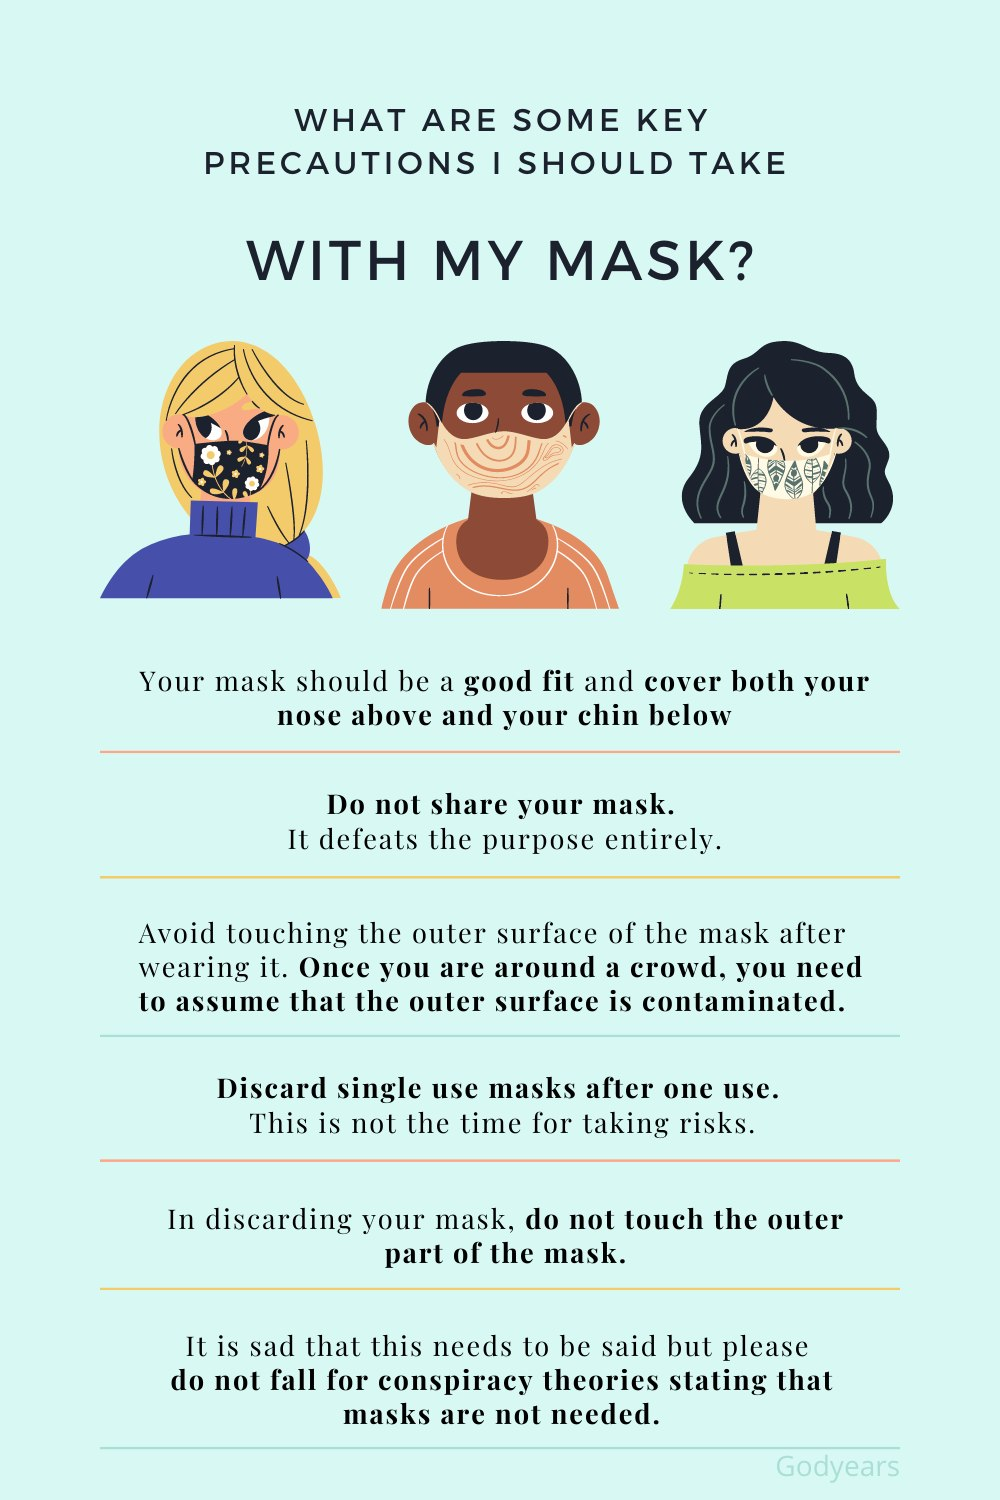 Precautions to Take While Wearing a Mask